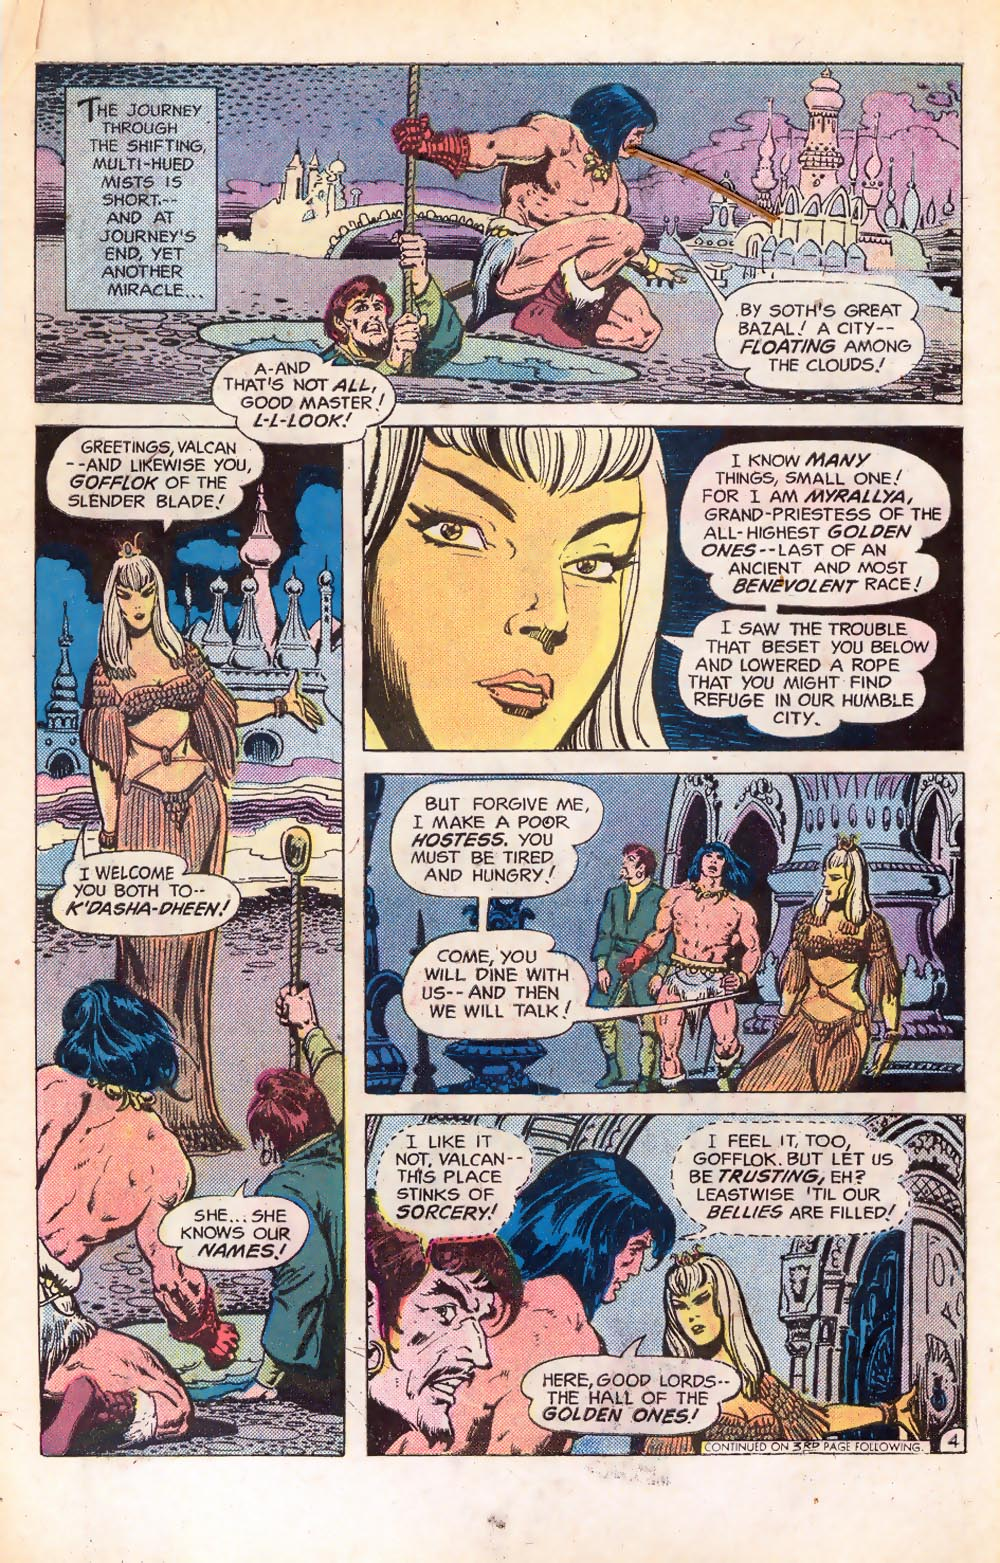 Claw the Unconquered (1975) #2 pg4, drawn by Ernie Chua & colored by Liz Berube.